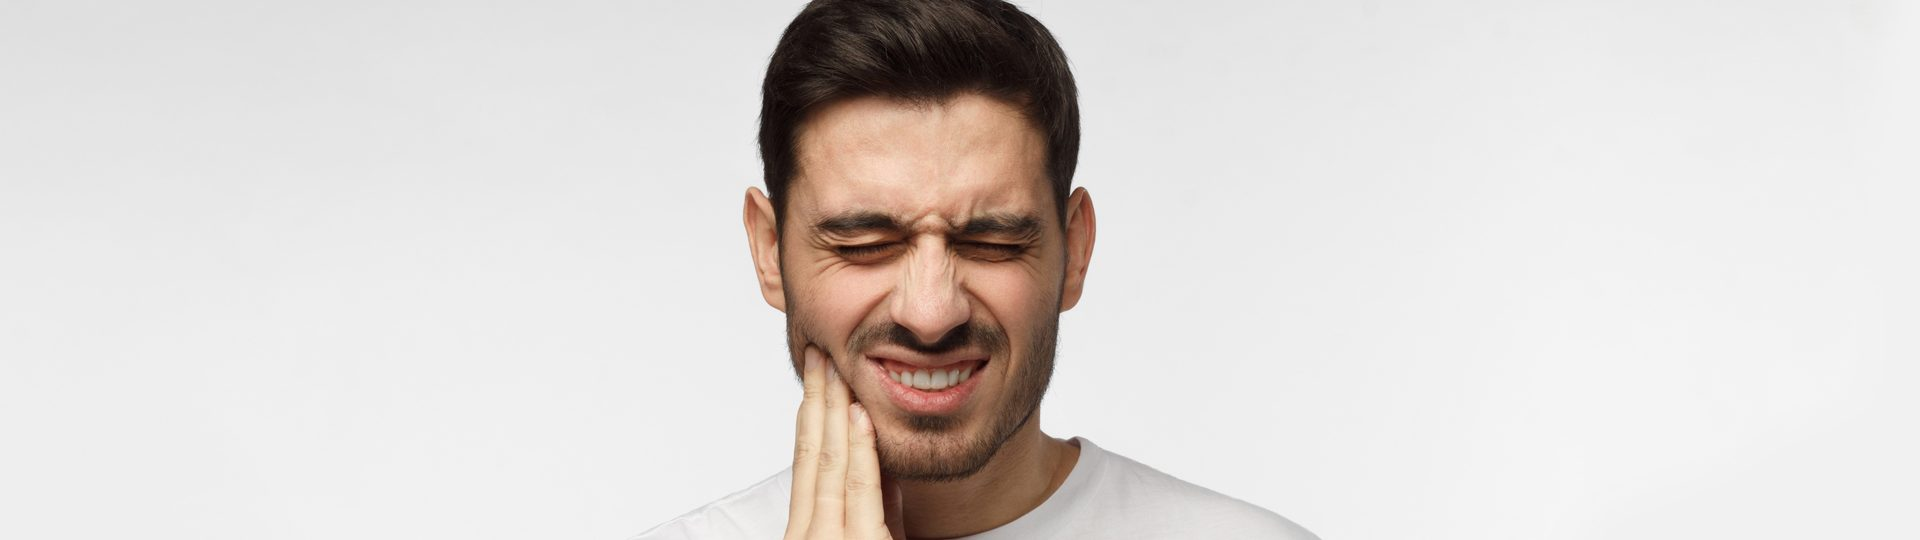 Why Should I See Dentist After Lock-down?